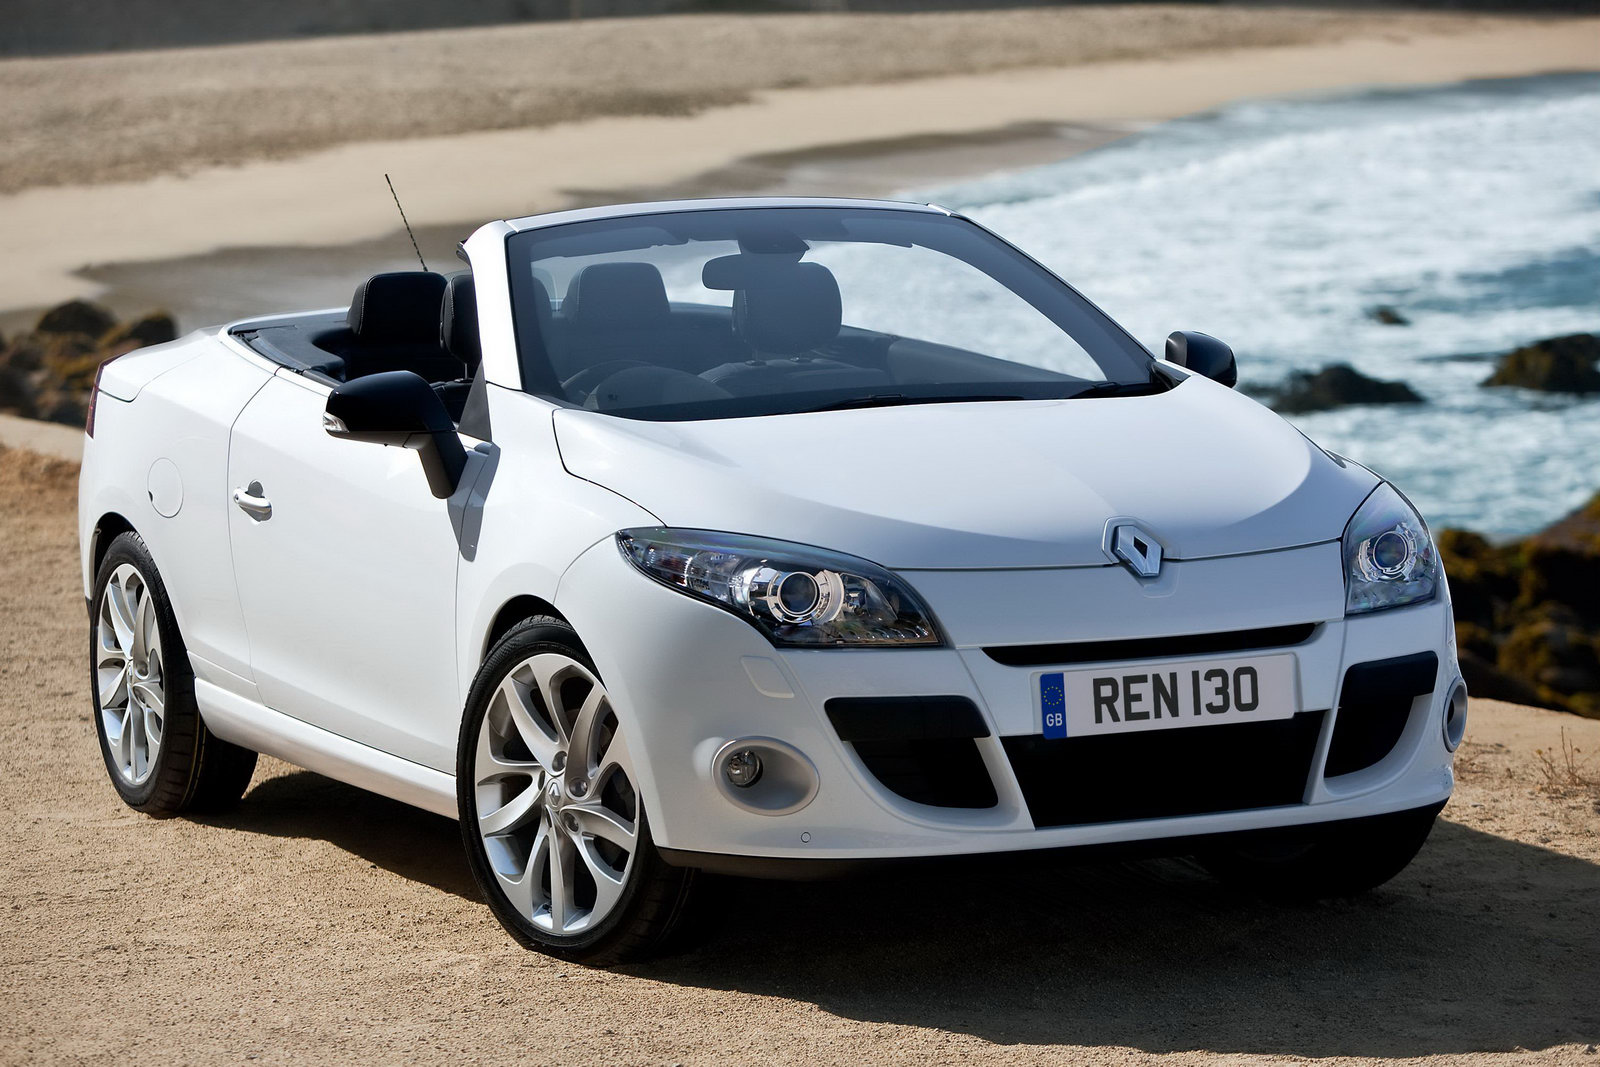 new renault m gane coup cabriolet to hit uk showrooms in july photos. Black Bedroom Furniture Sets. Home Design Ideas